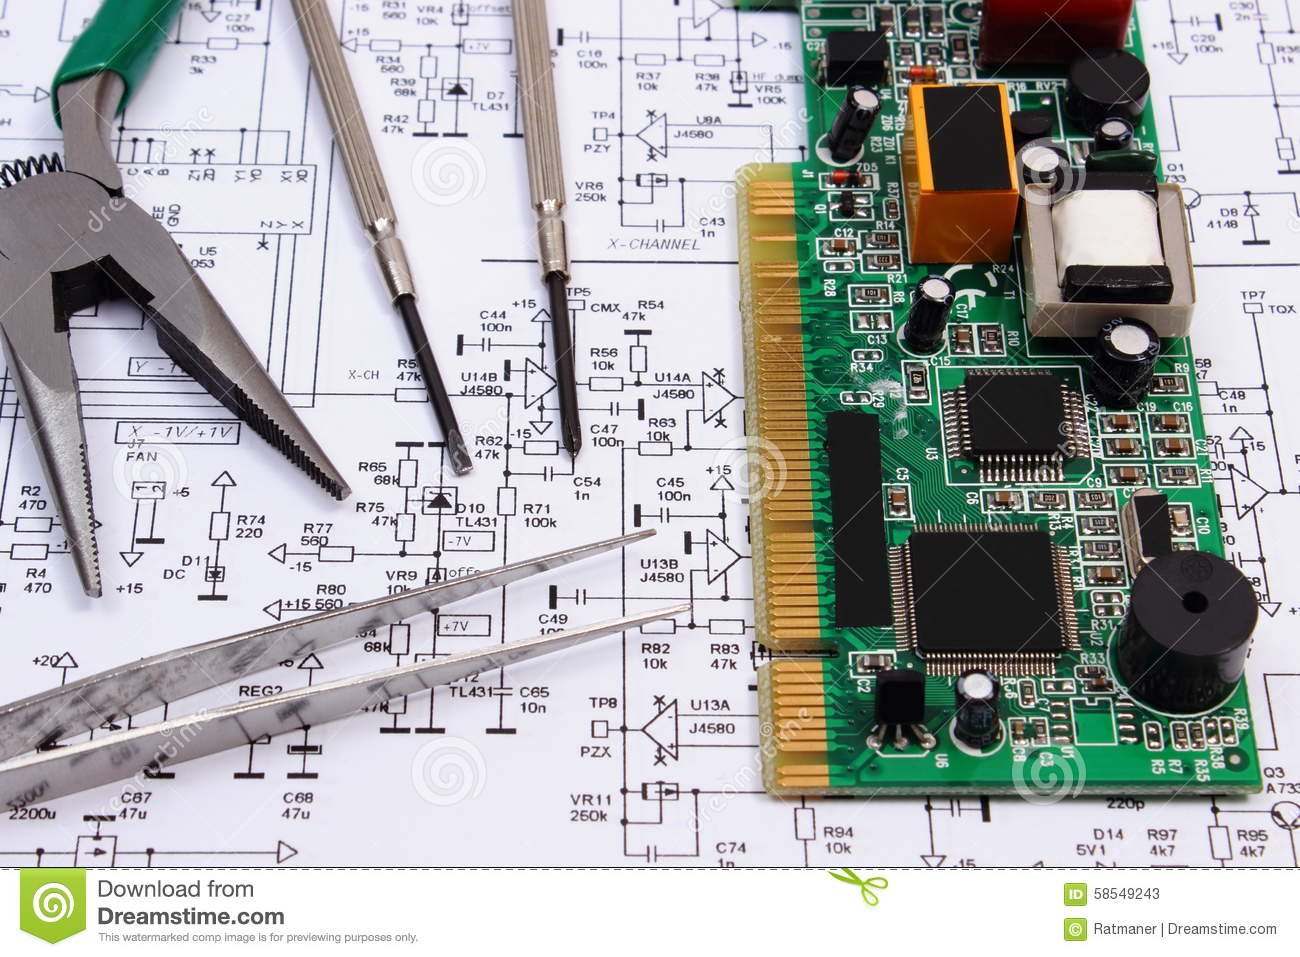 Basics In Building Electronic Circuits On A Printed Circuit Board The